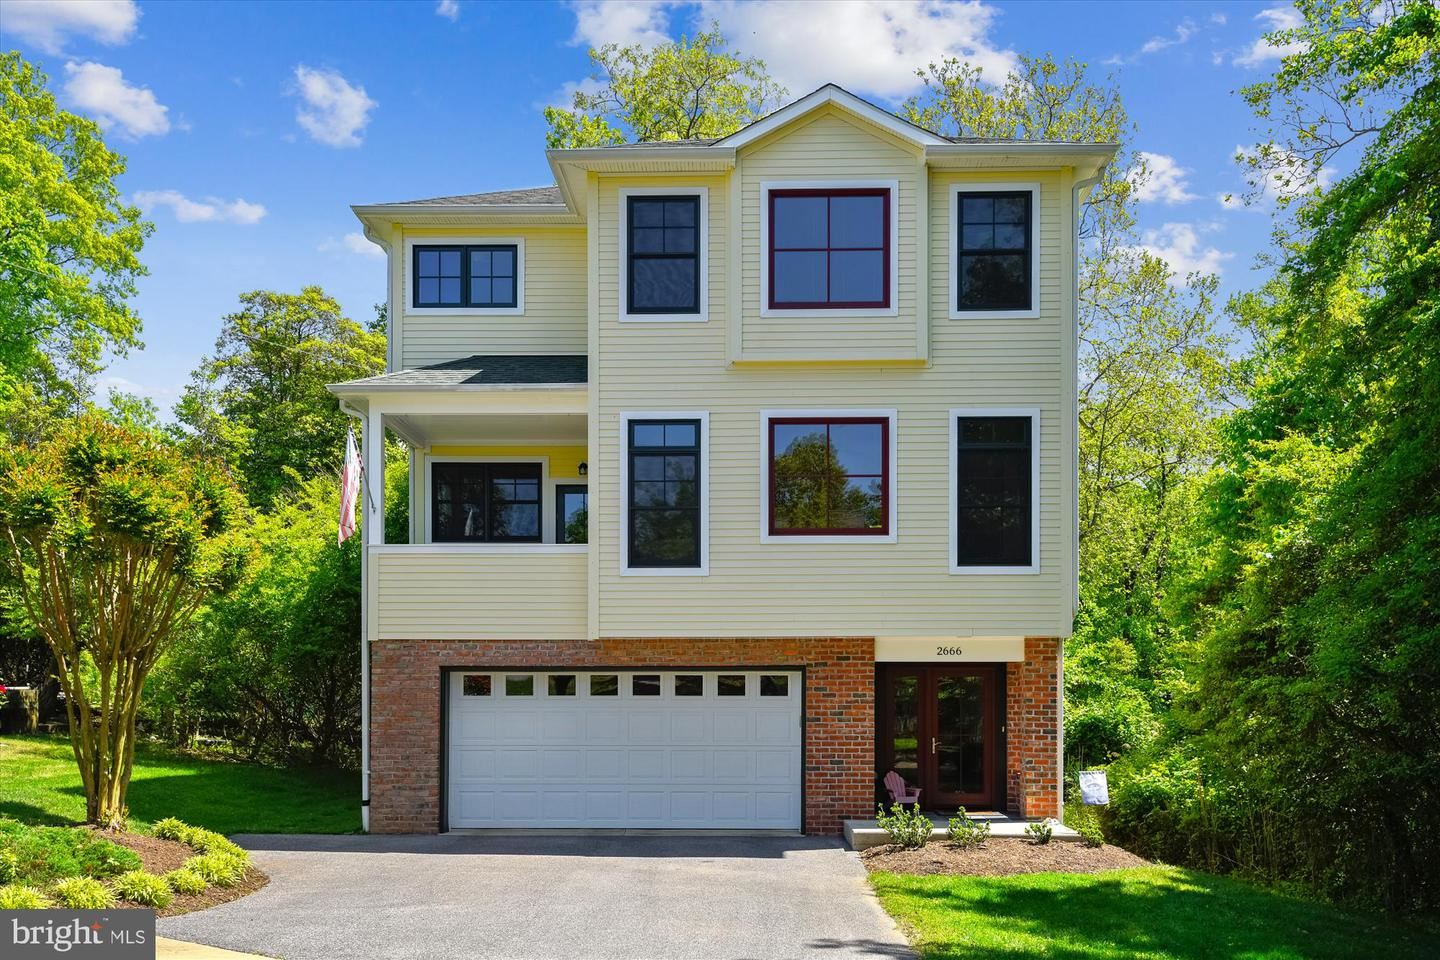 2666 CLAIBOURNE CT, Annapolis, MD 21403 - MLS#: MDAA468282